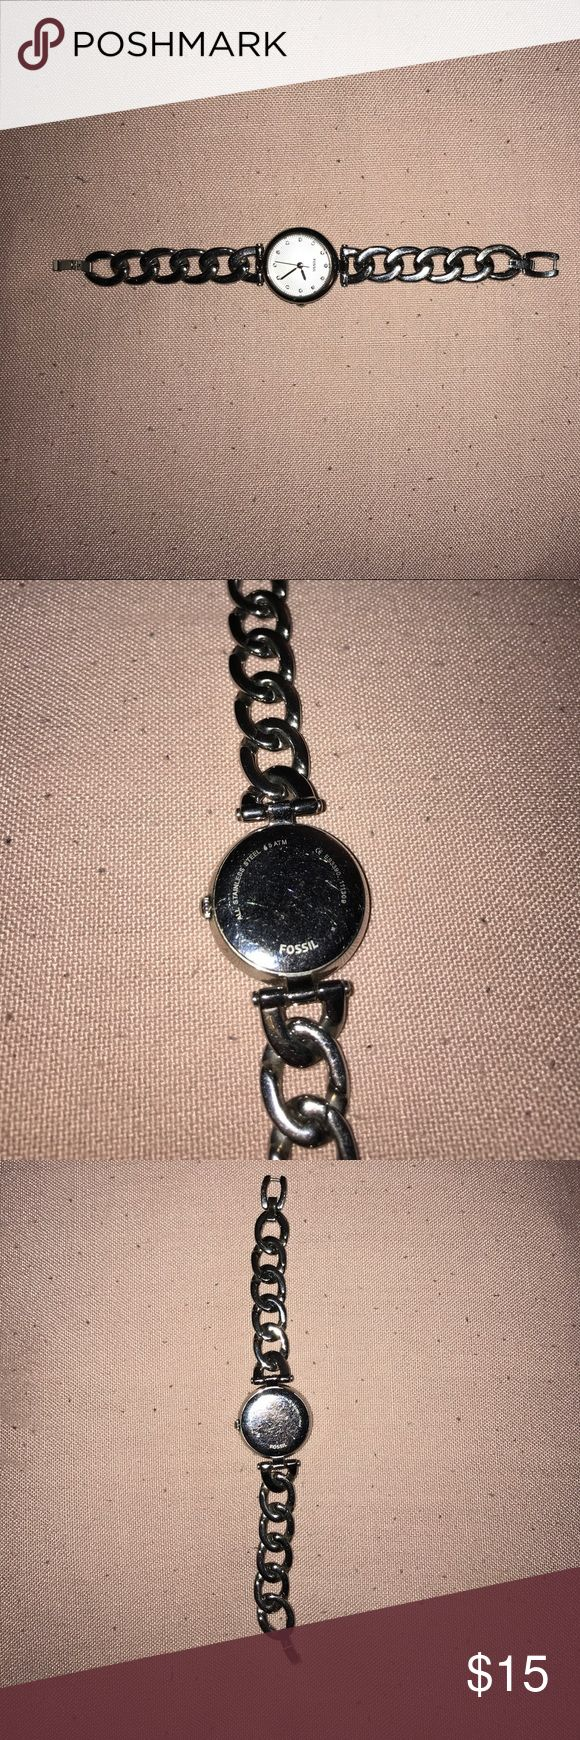 Fossil watch Bracelet link watch. minor scratches not very noticeable Battery needs to be replaced Fossil Accessories Watches